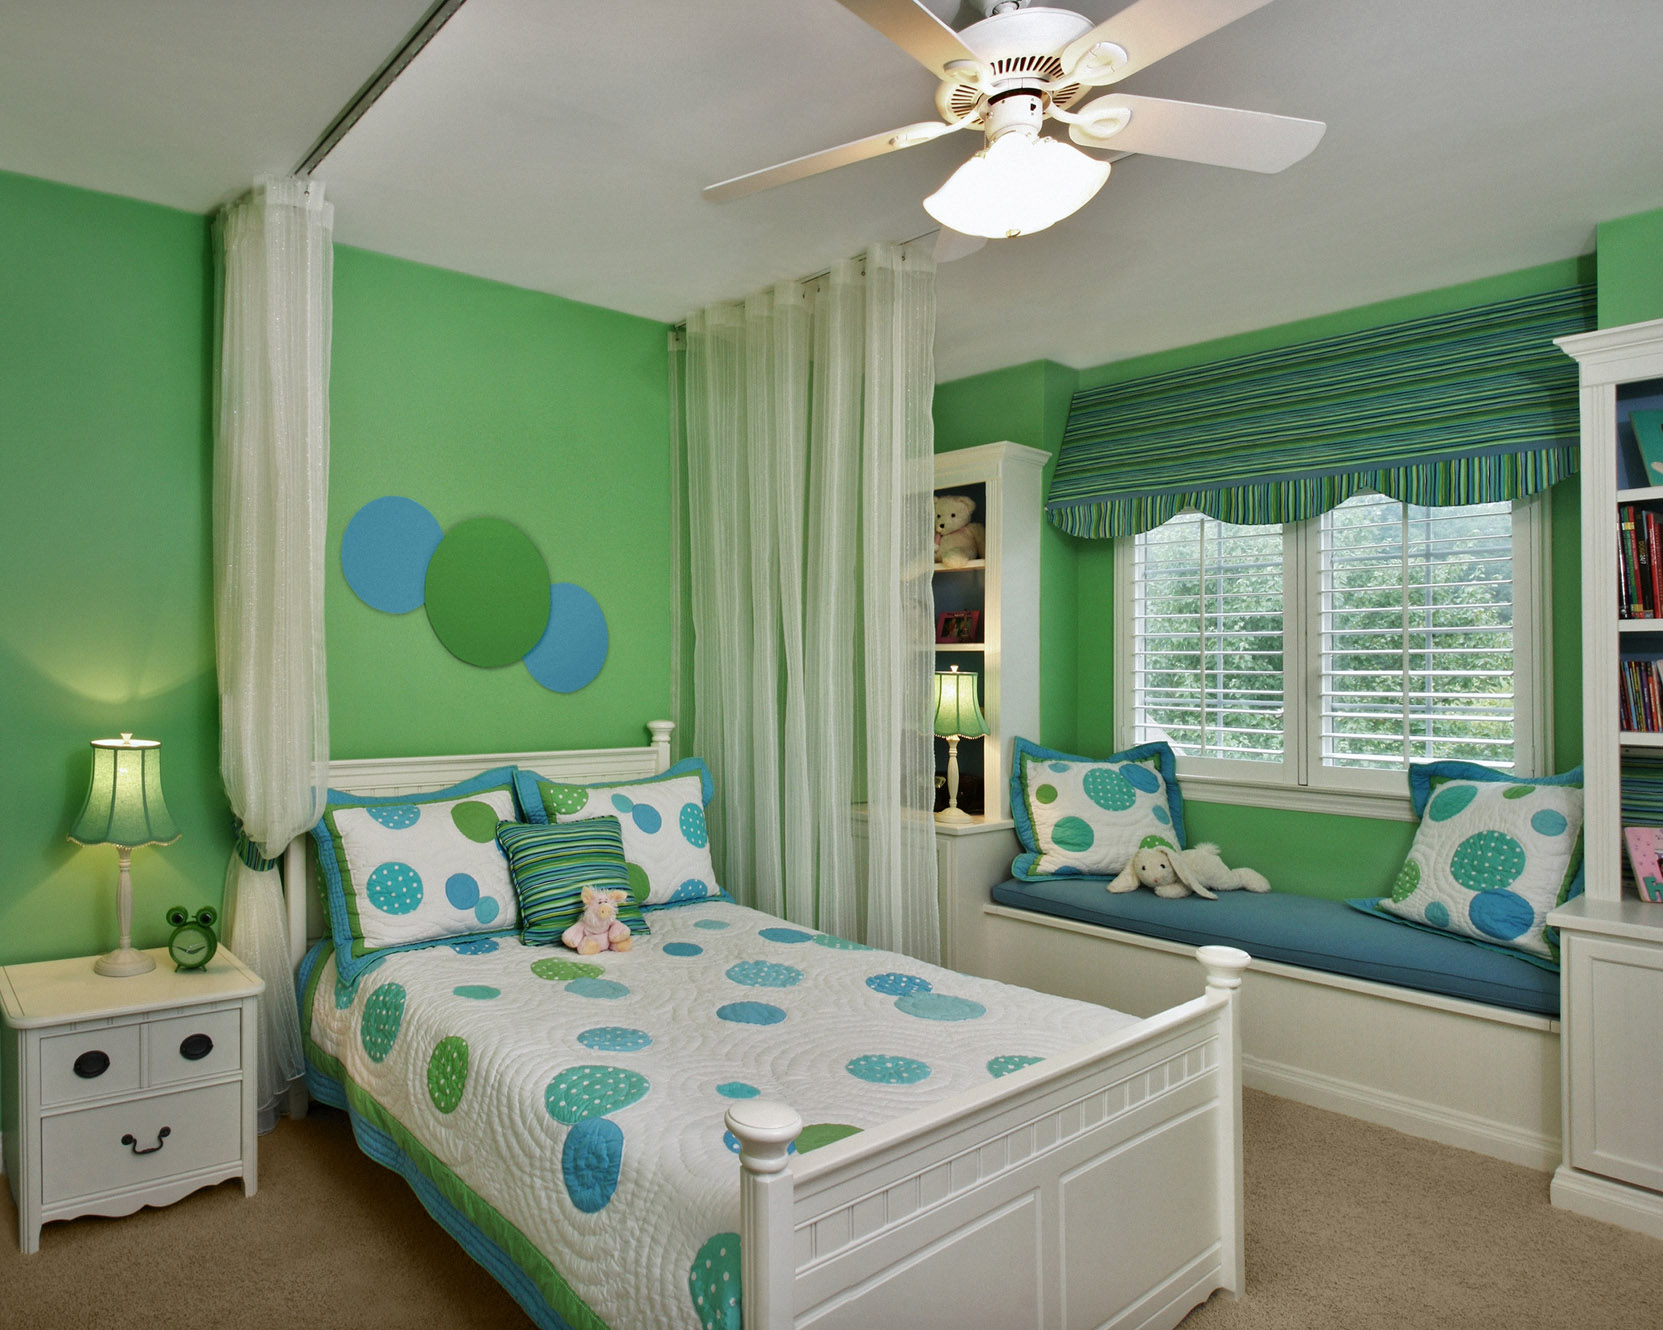 Pics Of Kids Rooms The Abcs Of Decoratingk Is For Kids Rooms Decorating